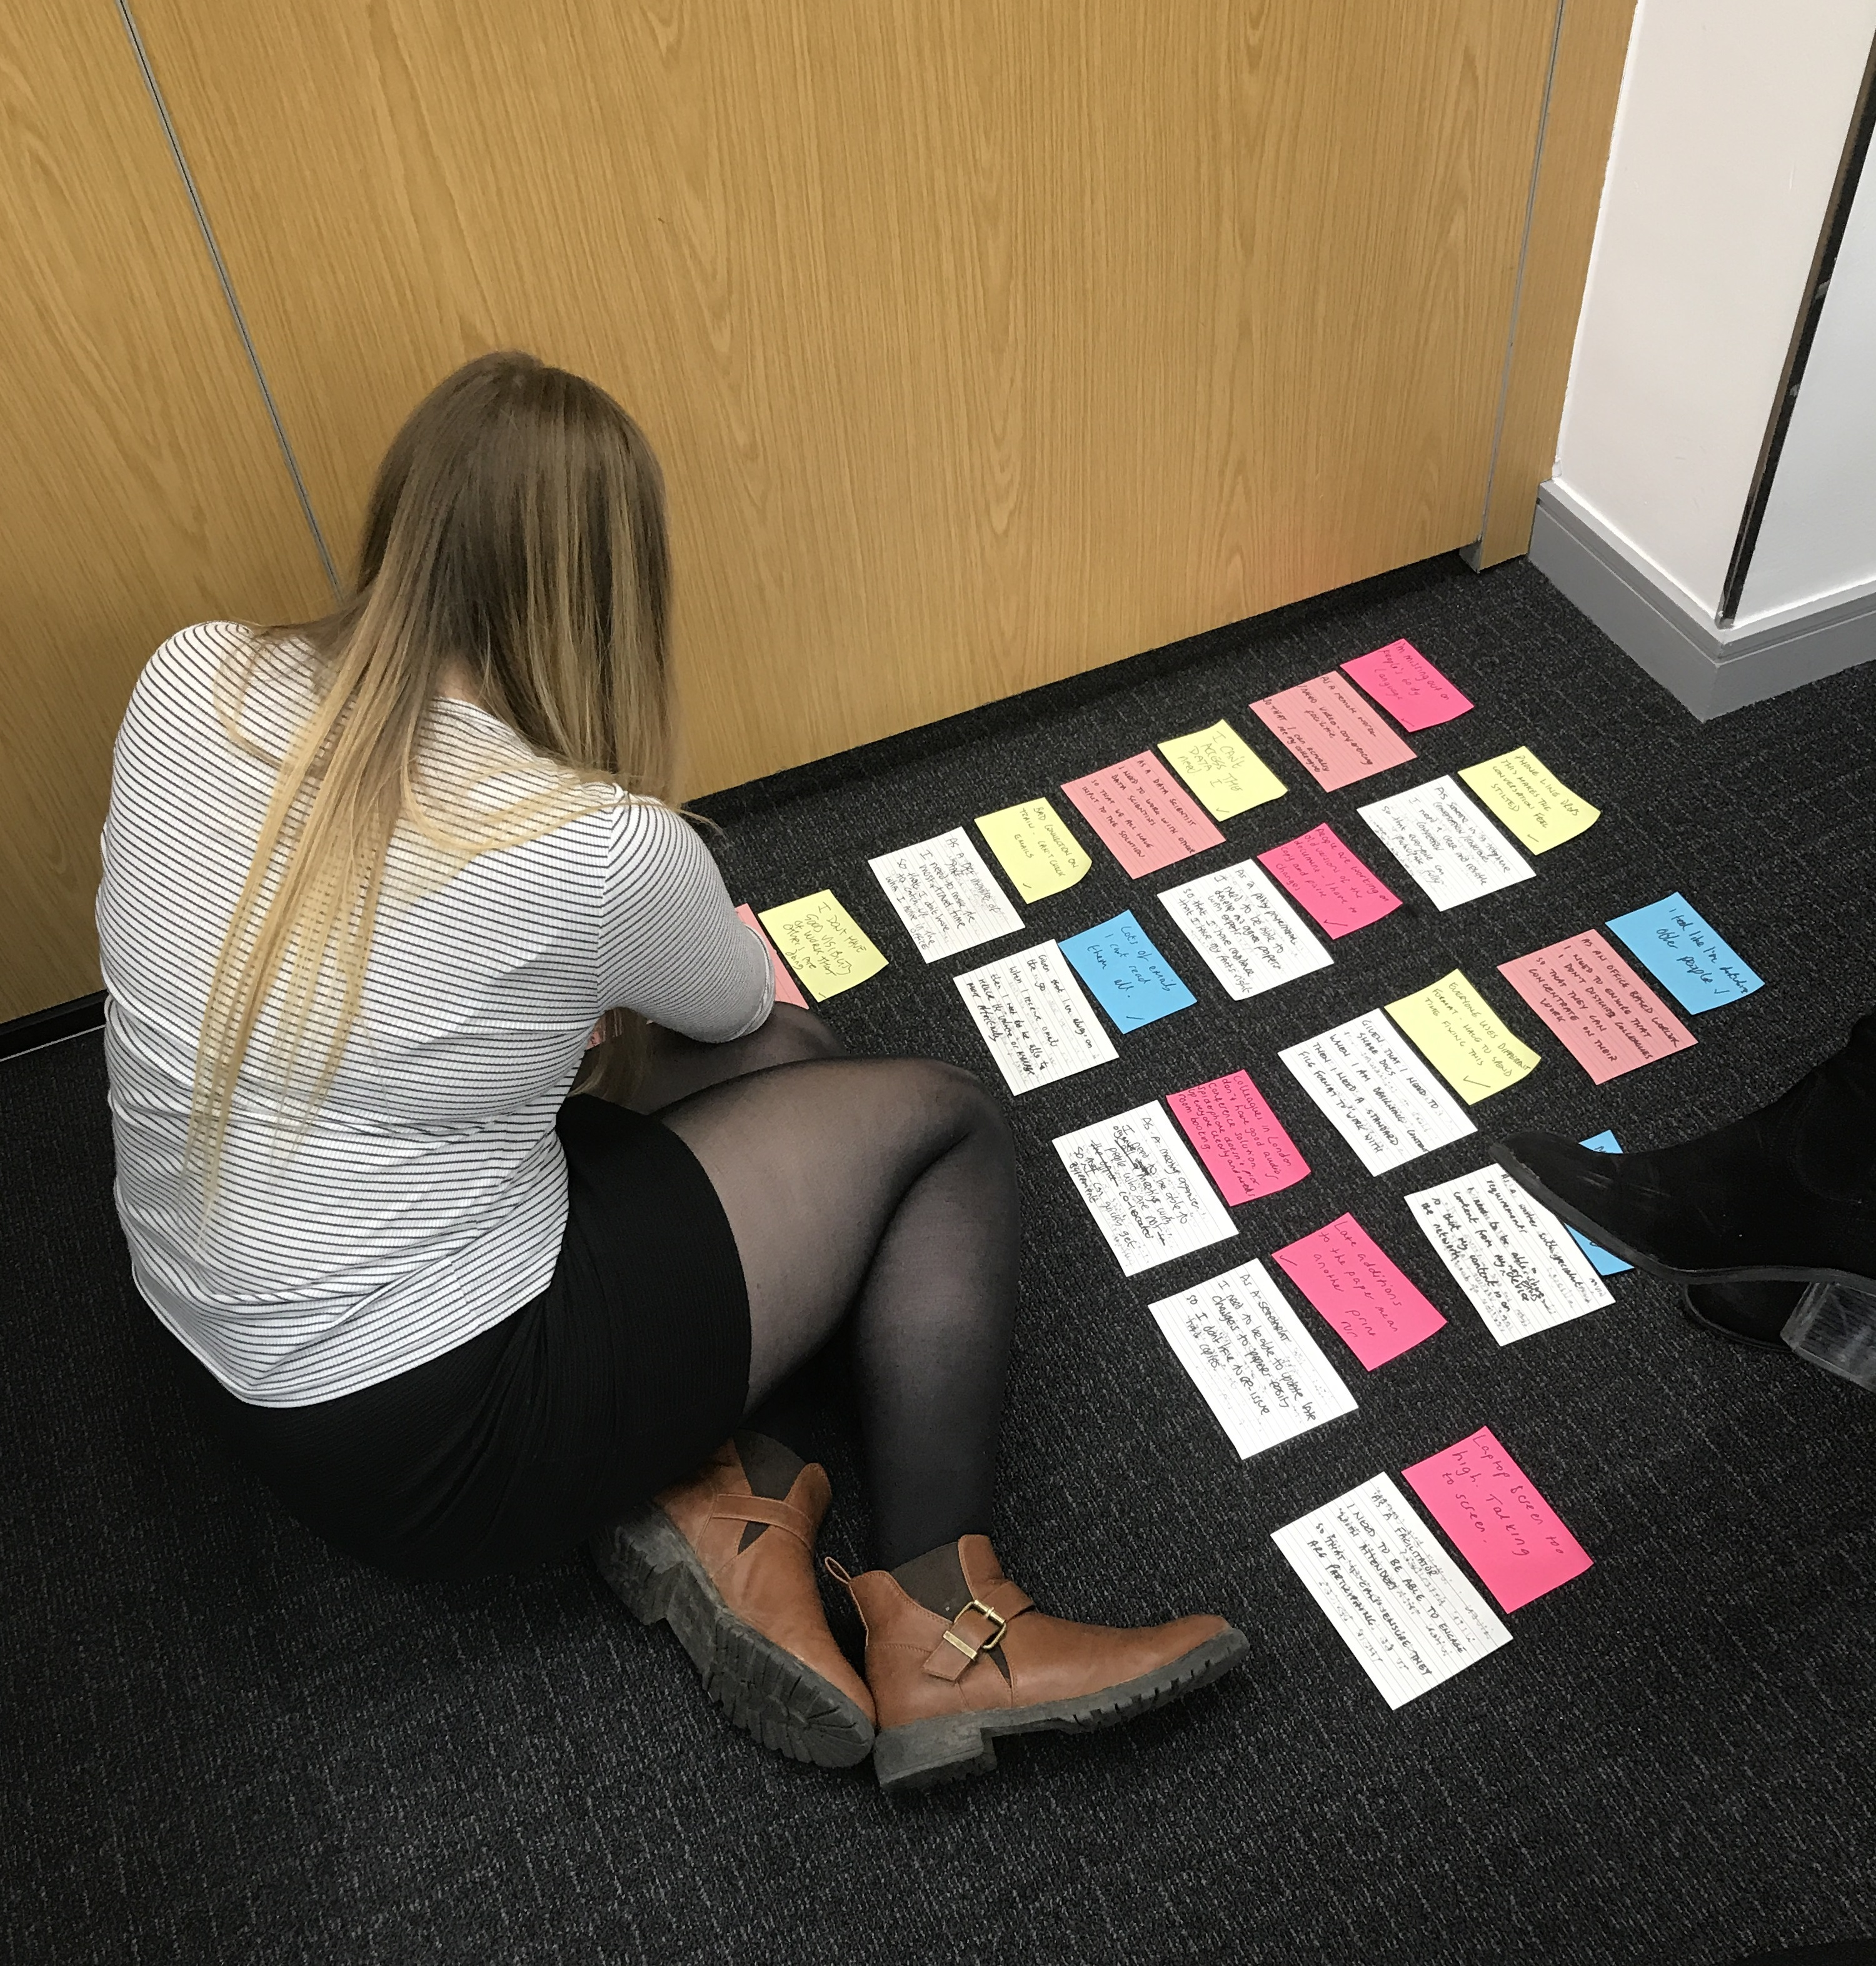 Gemma doing a card sort on a corner of the office floor